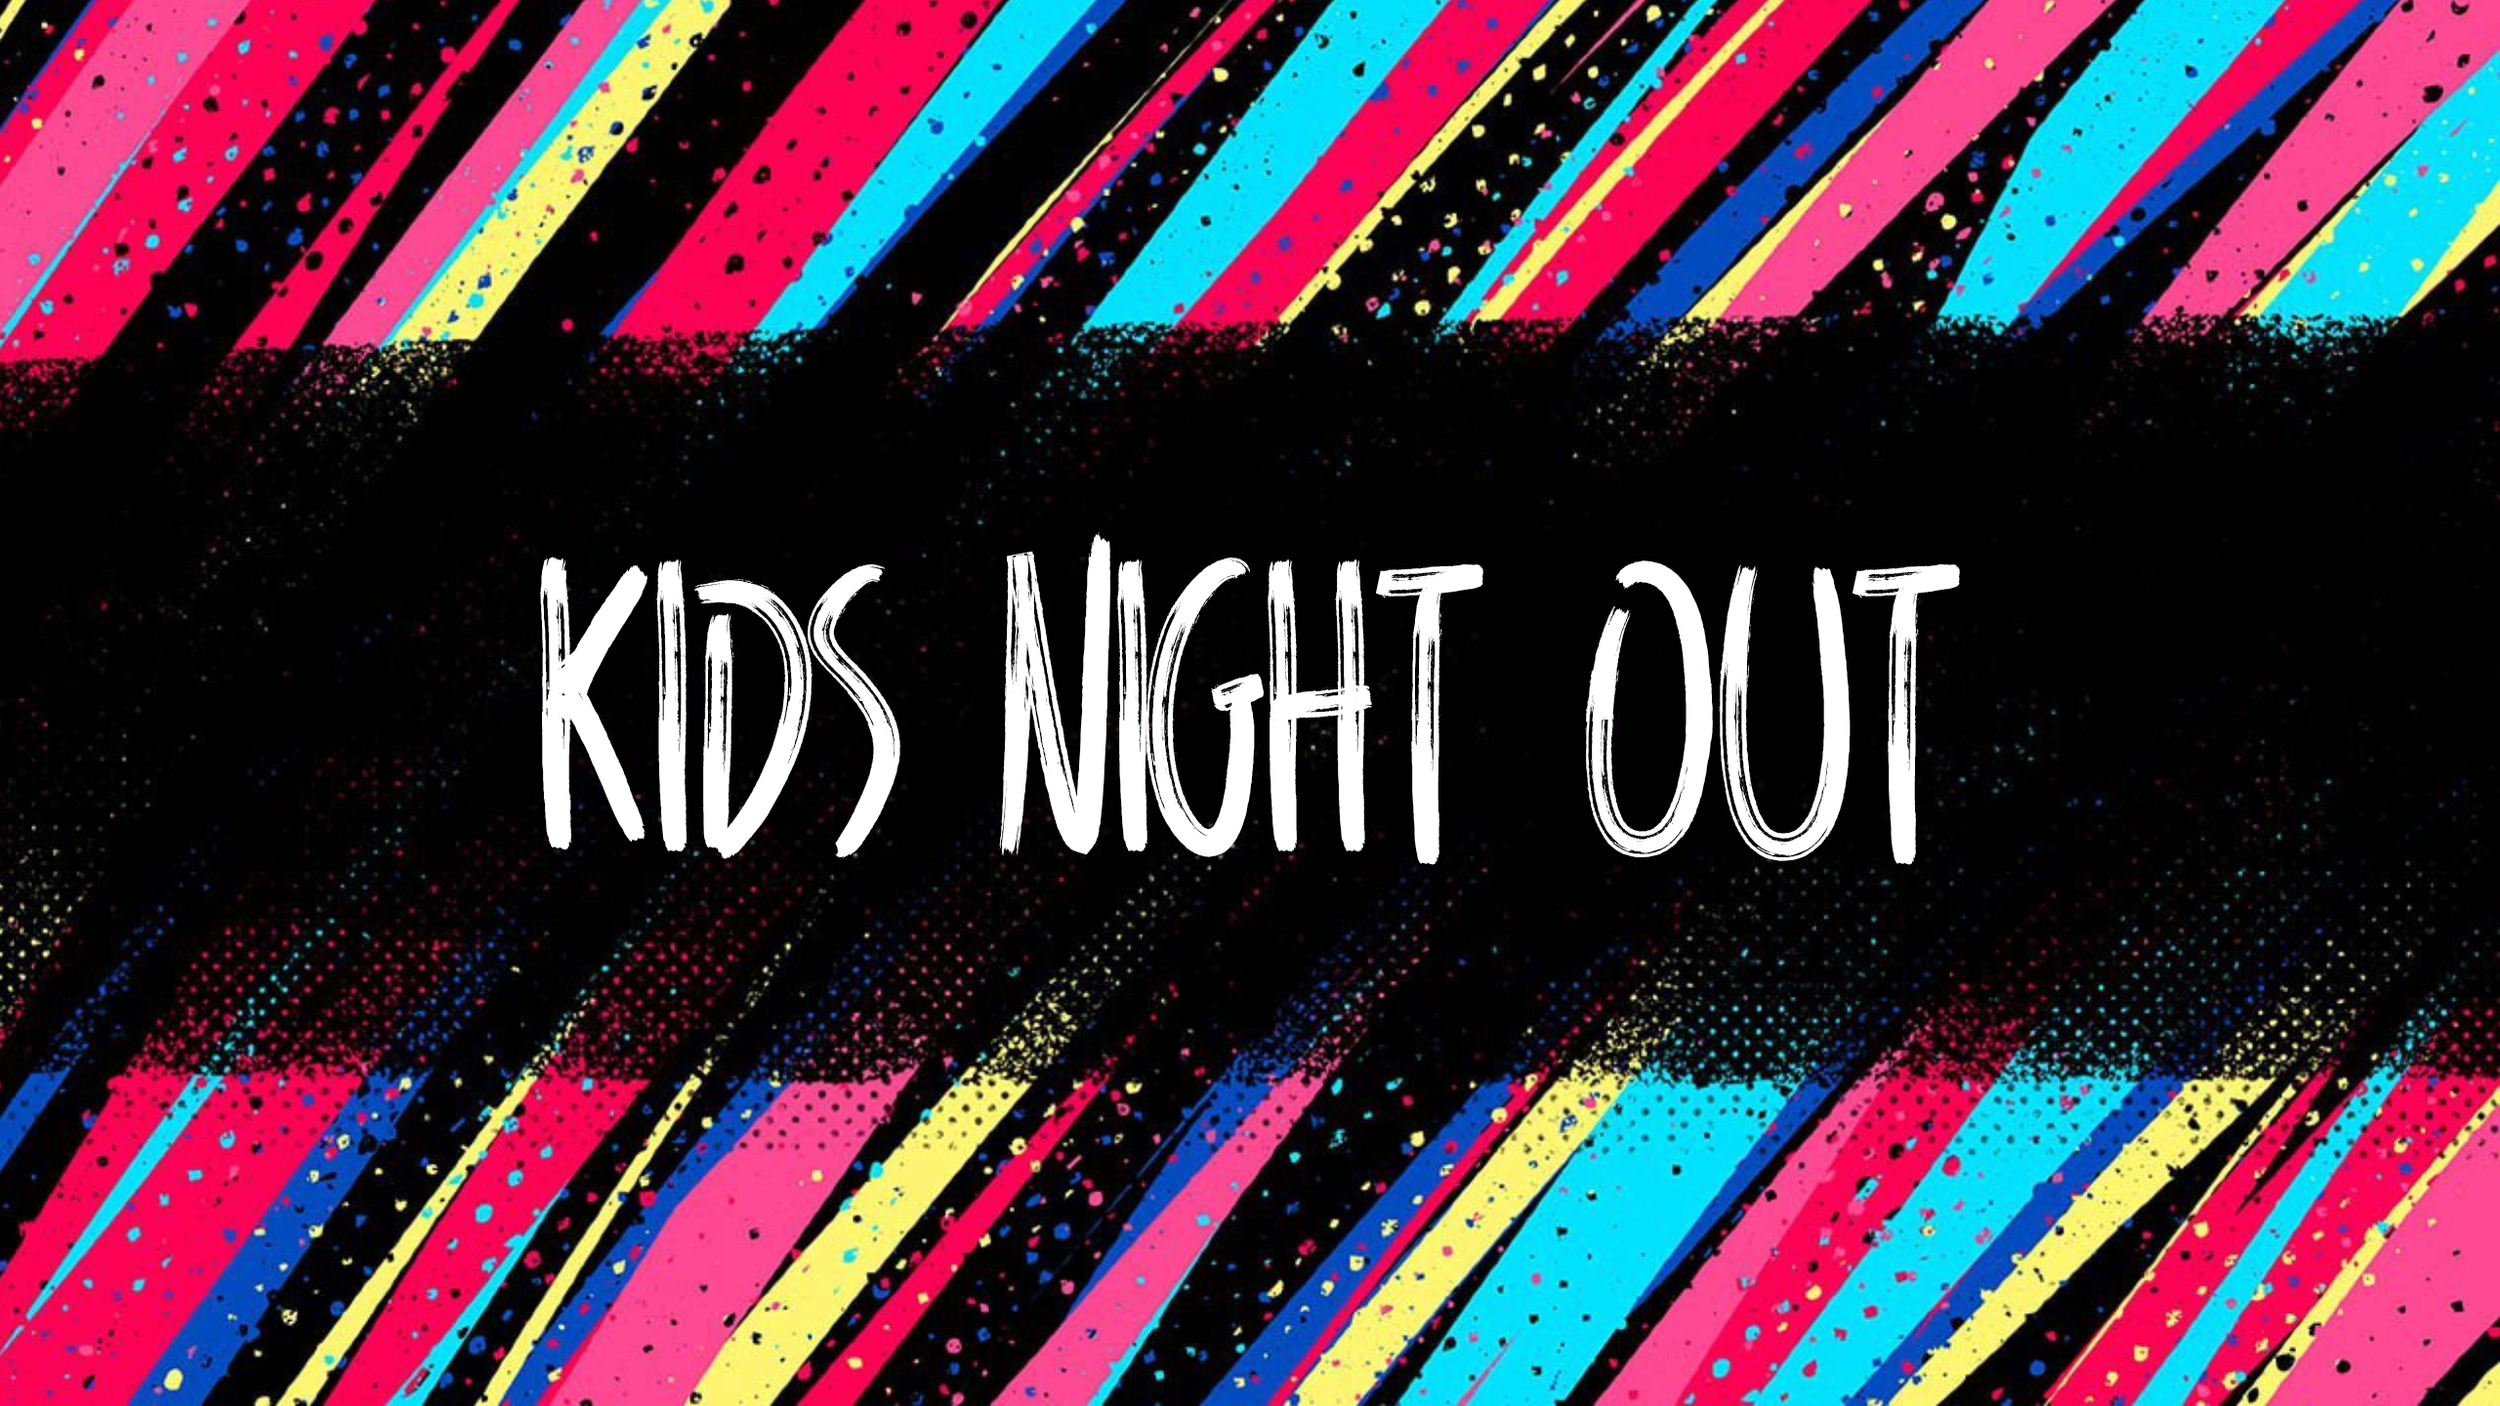 Kids Night Out - A monthly gathering of 4th and 5th graders.